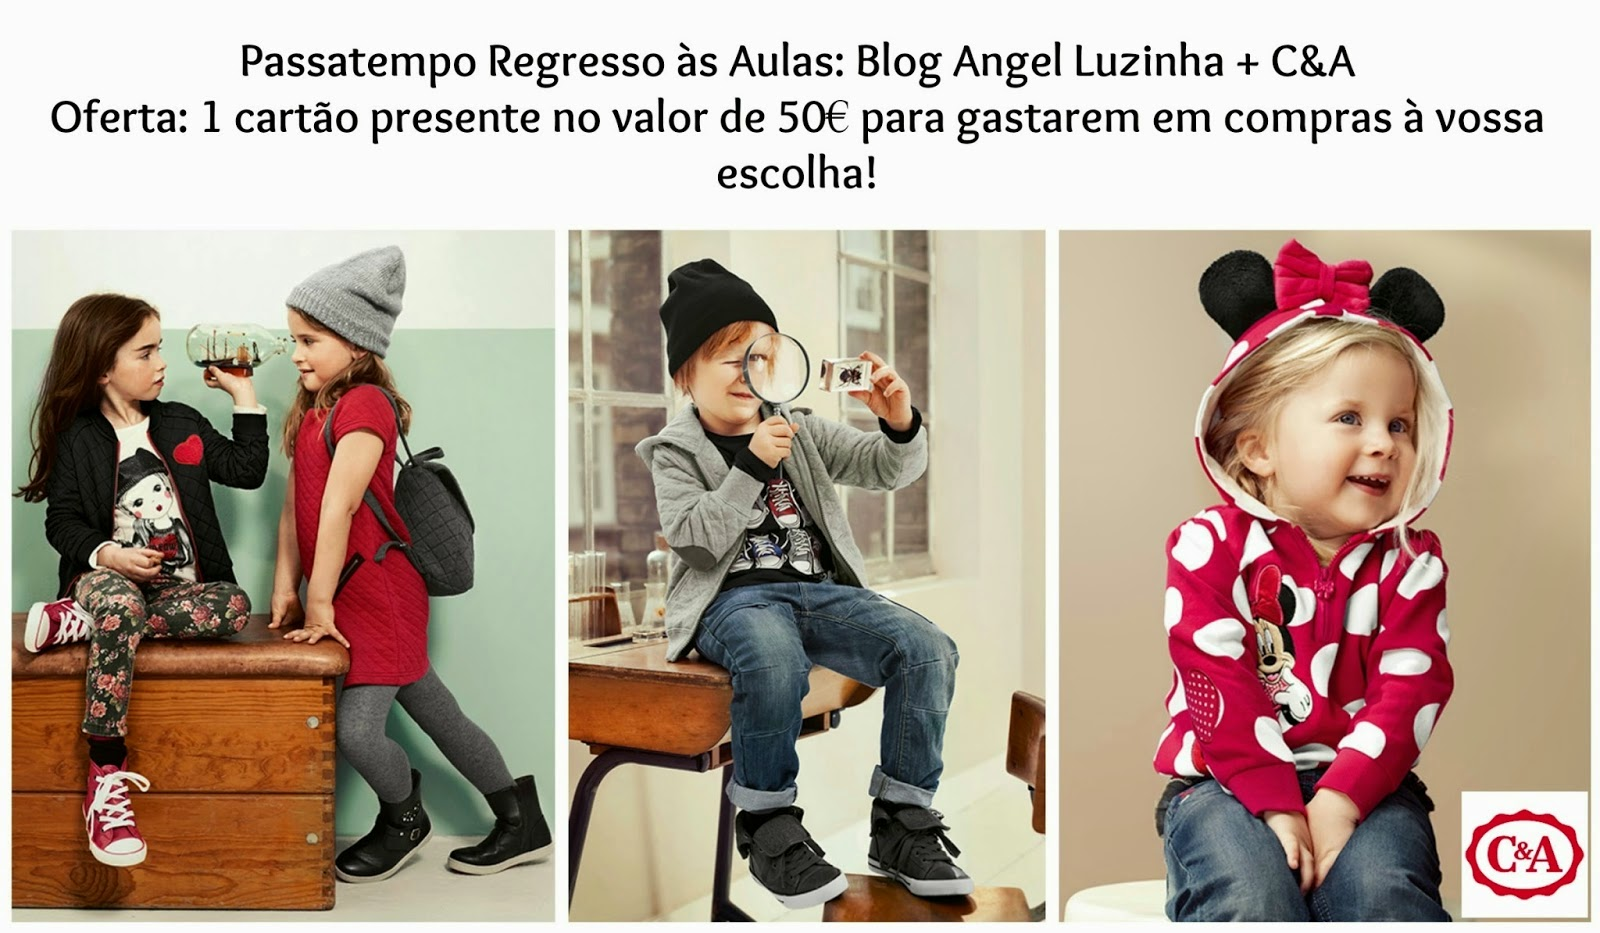 http://www.angel-luzinha.com/2014/08/passatempo-regresso-as-aulas-blog-angel.html